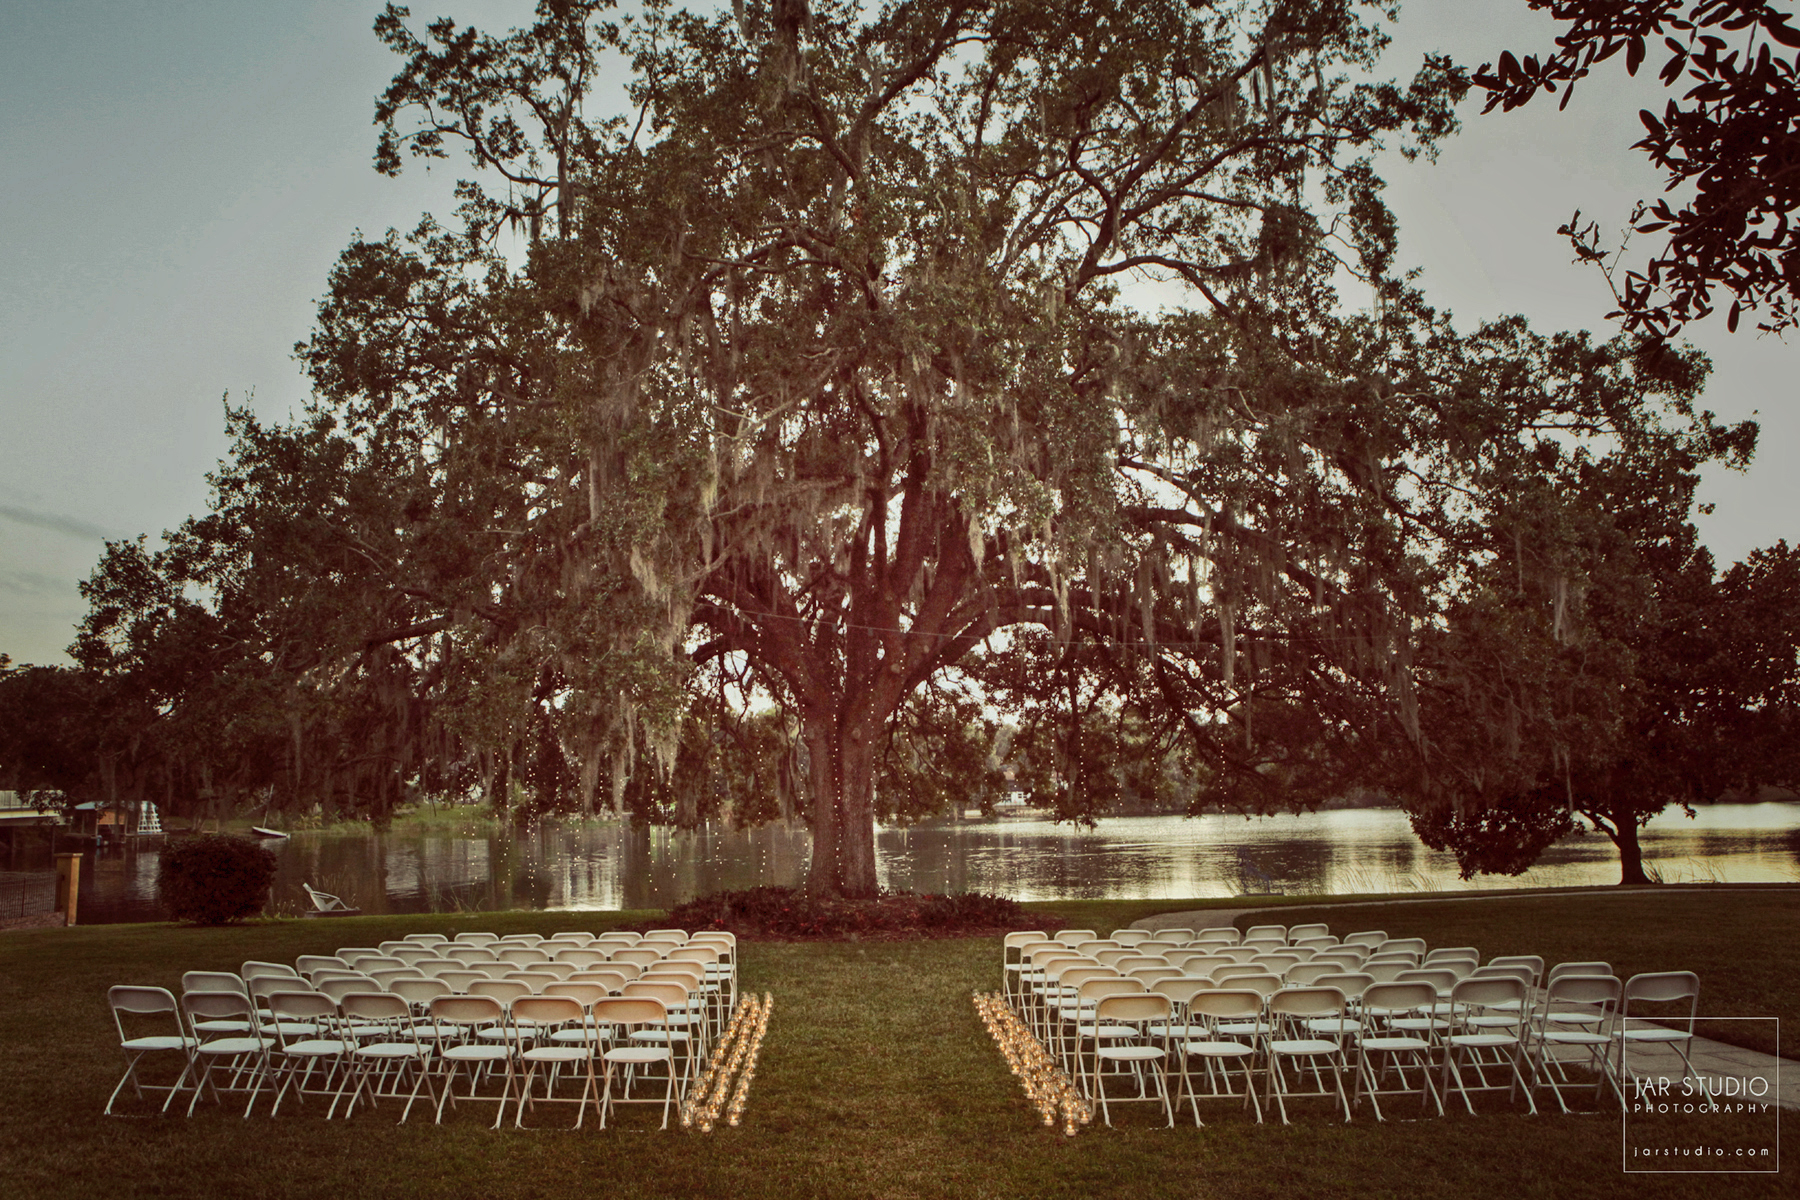 20-orlando-science-center-outdoor-backyard-wedding-jarstudio-photography.jpg